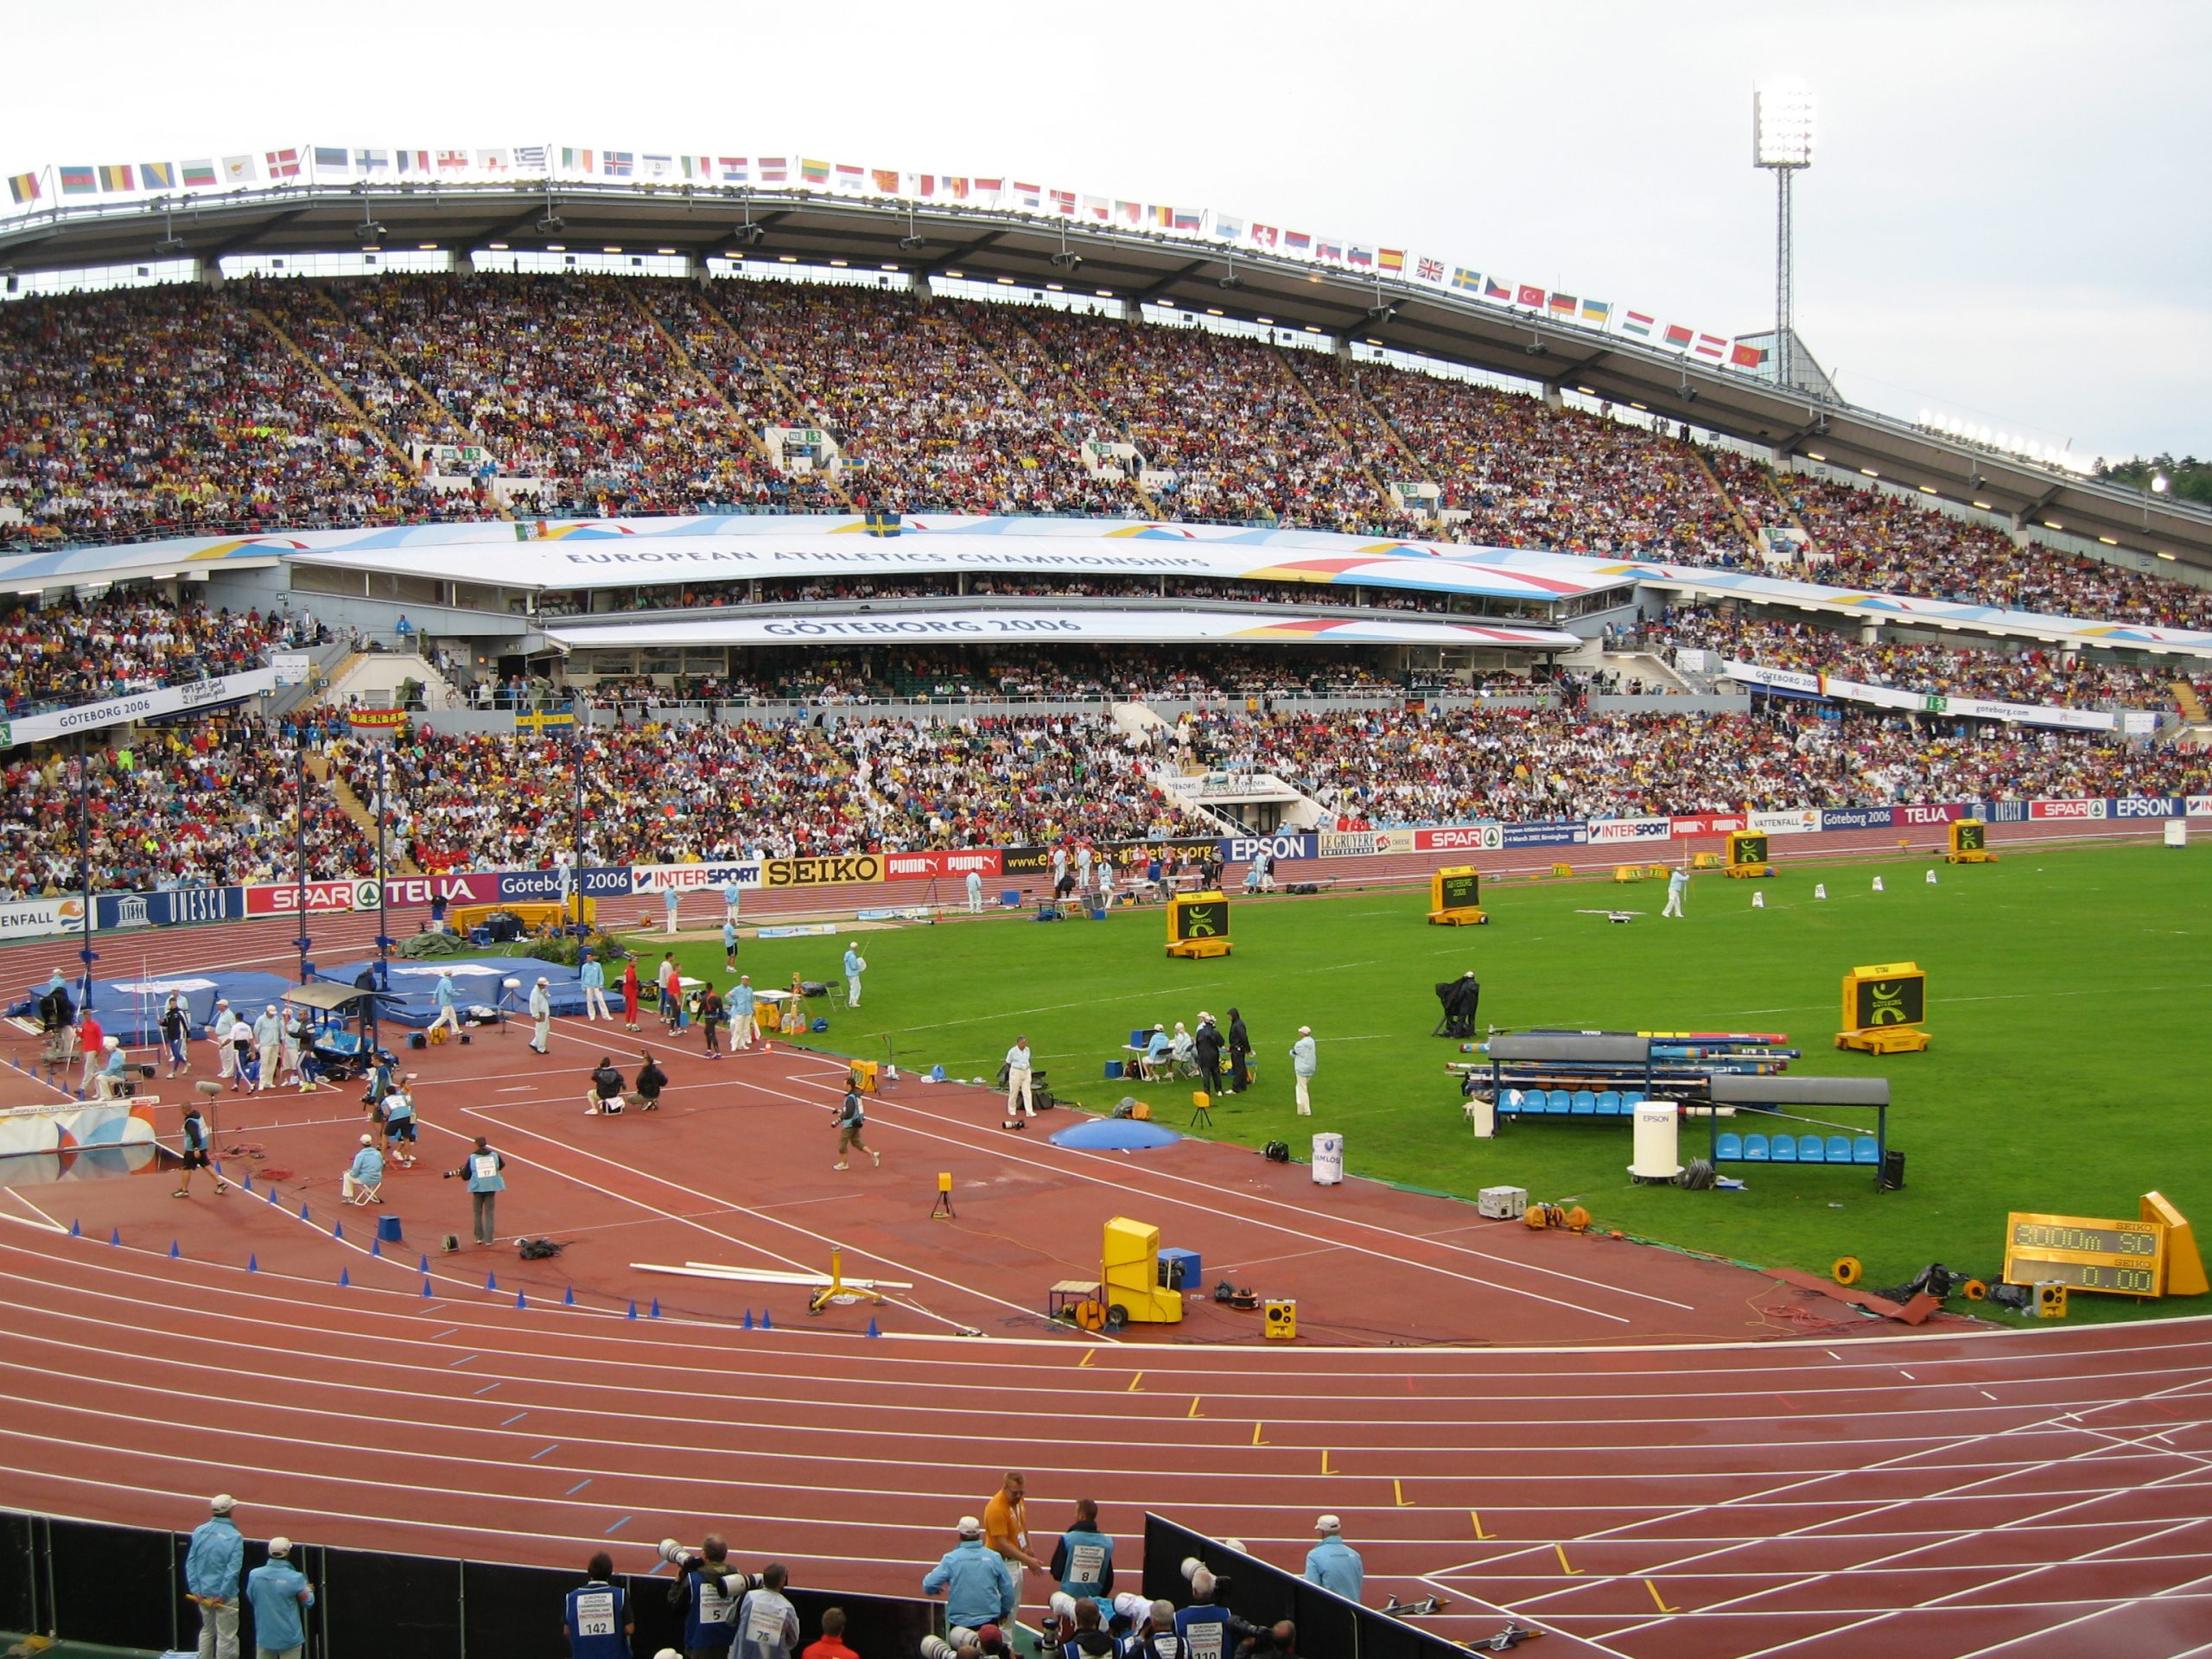 """""""File:2006 European Championships in Athletics - Ullevi august 11th.jpg"""" by Vogler is licensed under CC BY-SA 3.0"""